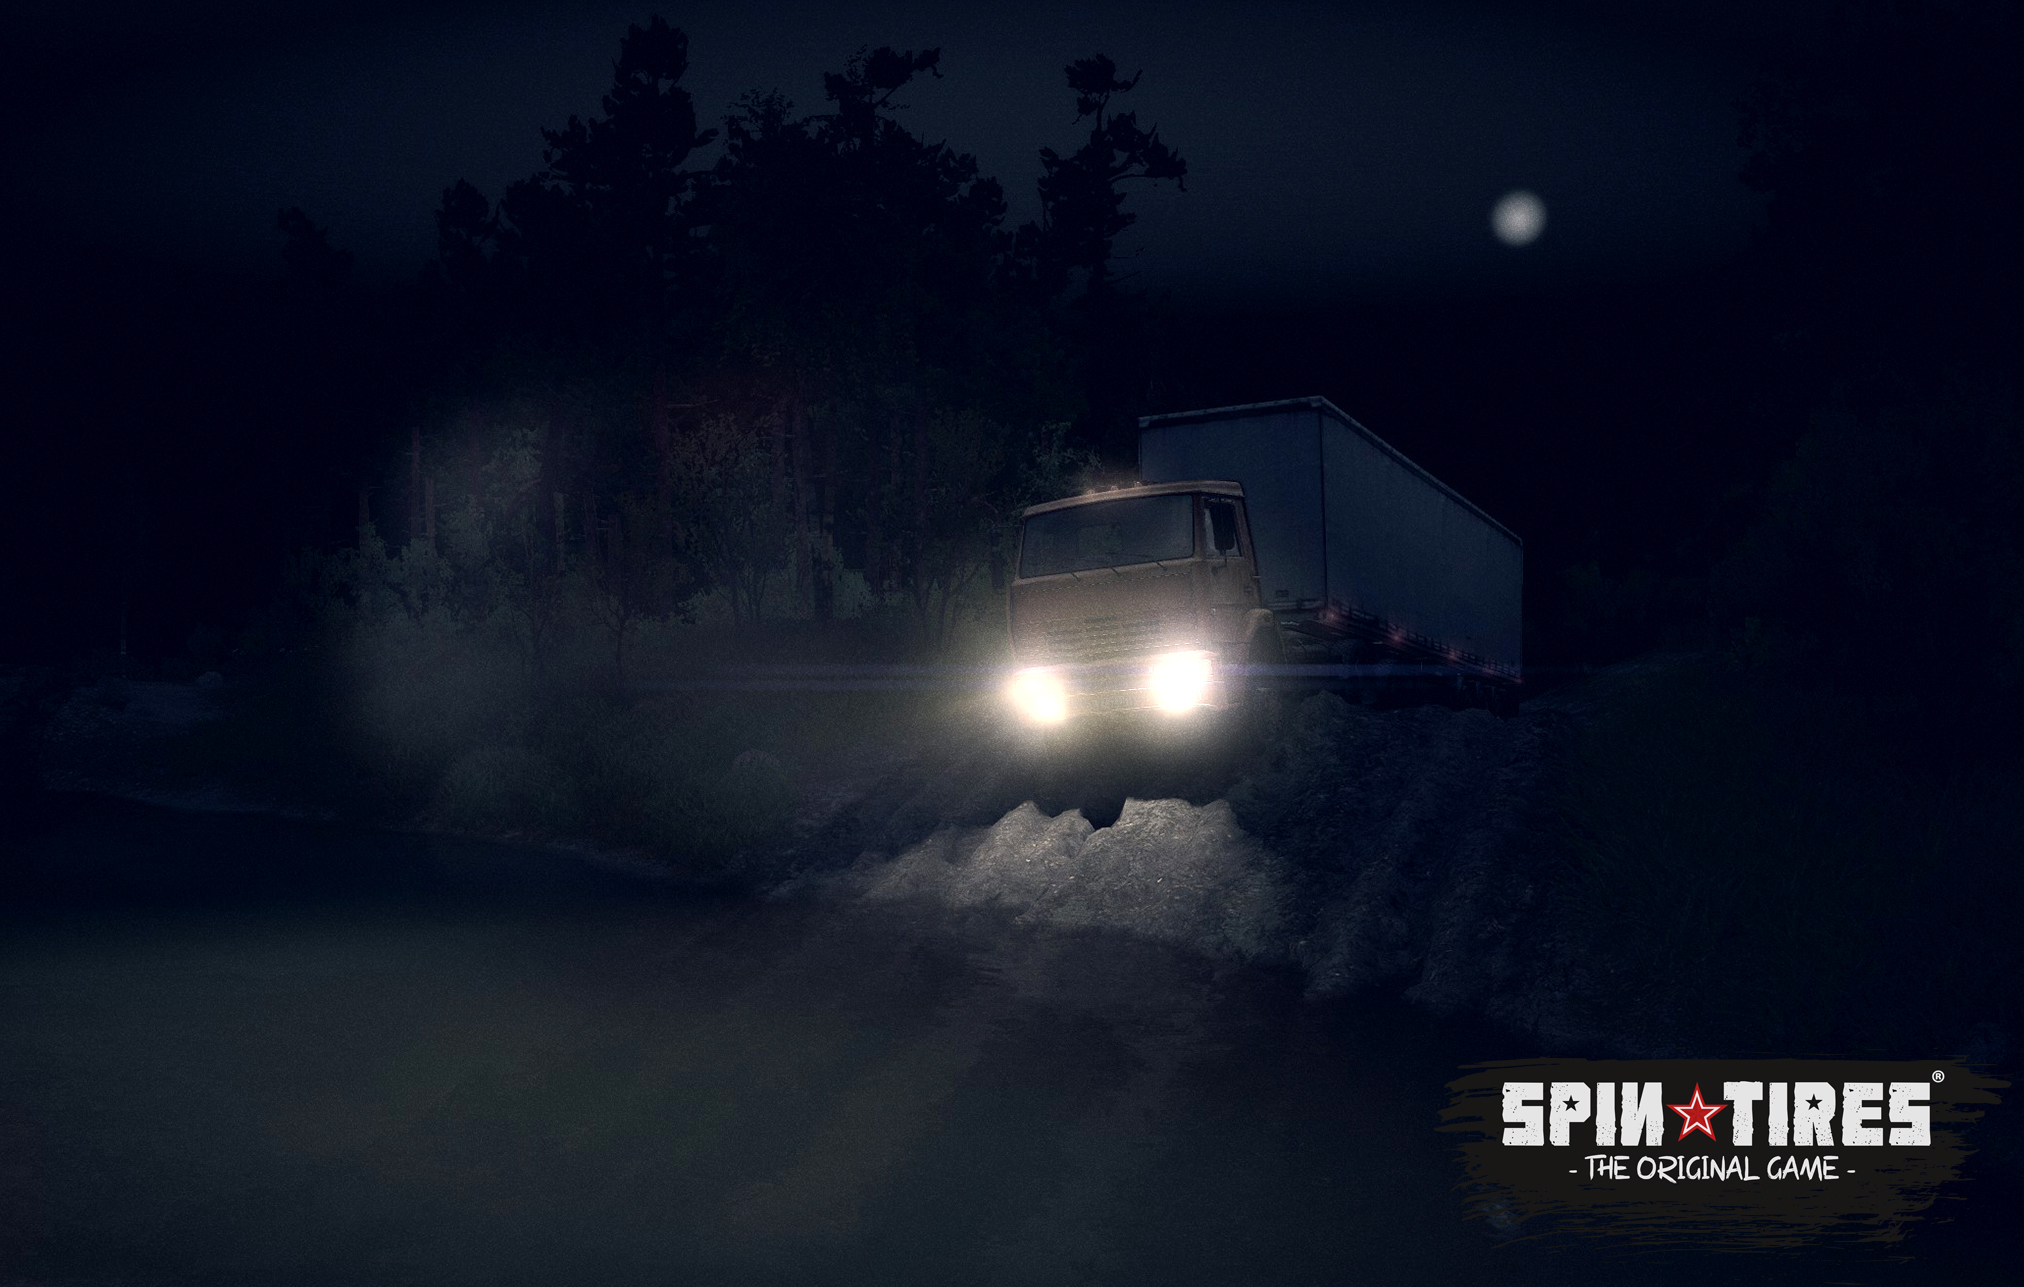 spintires demo game free download